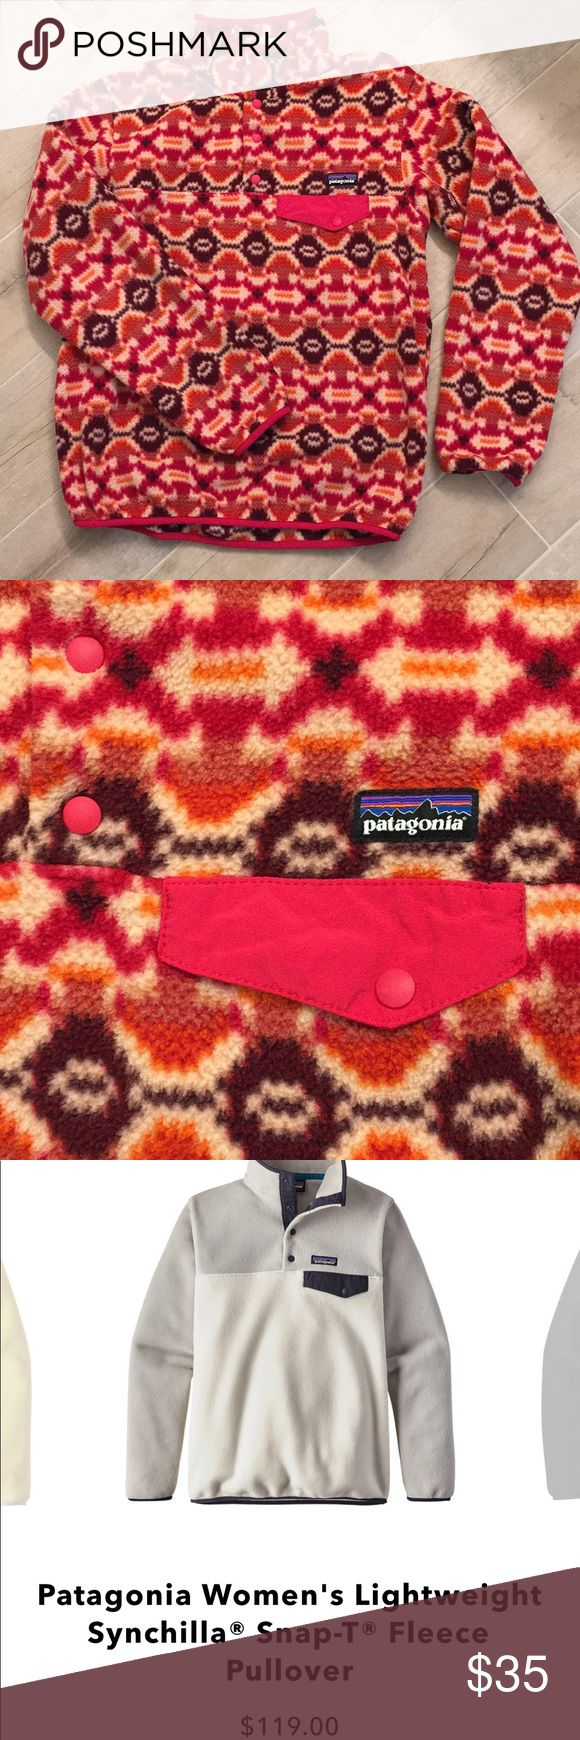 Patagonia Synchilla Snap T Pullover Super cozy. Bright and cheerful colors. Perfect condition. Just cleaning out my closet. Patagonia Jackets & Coats